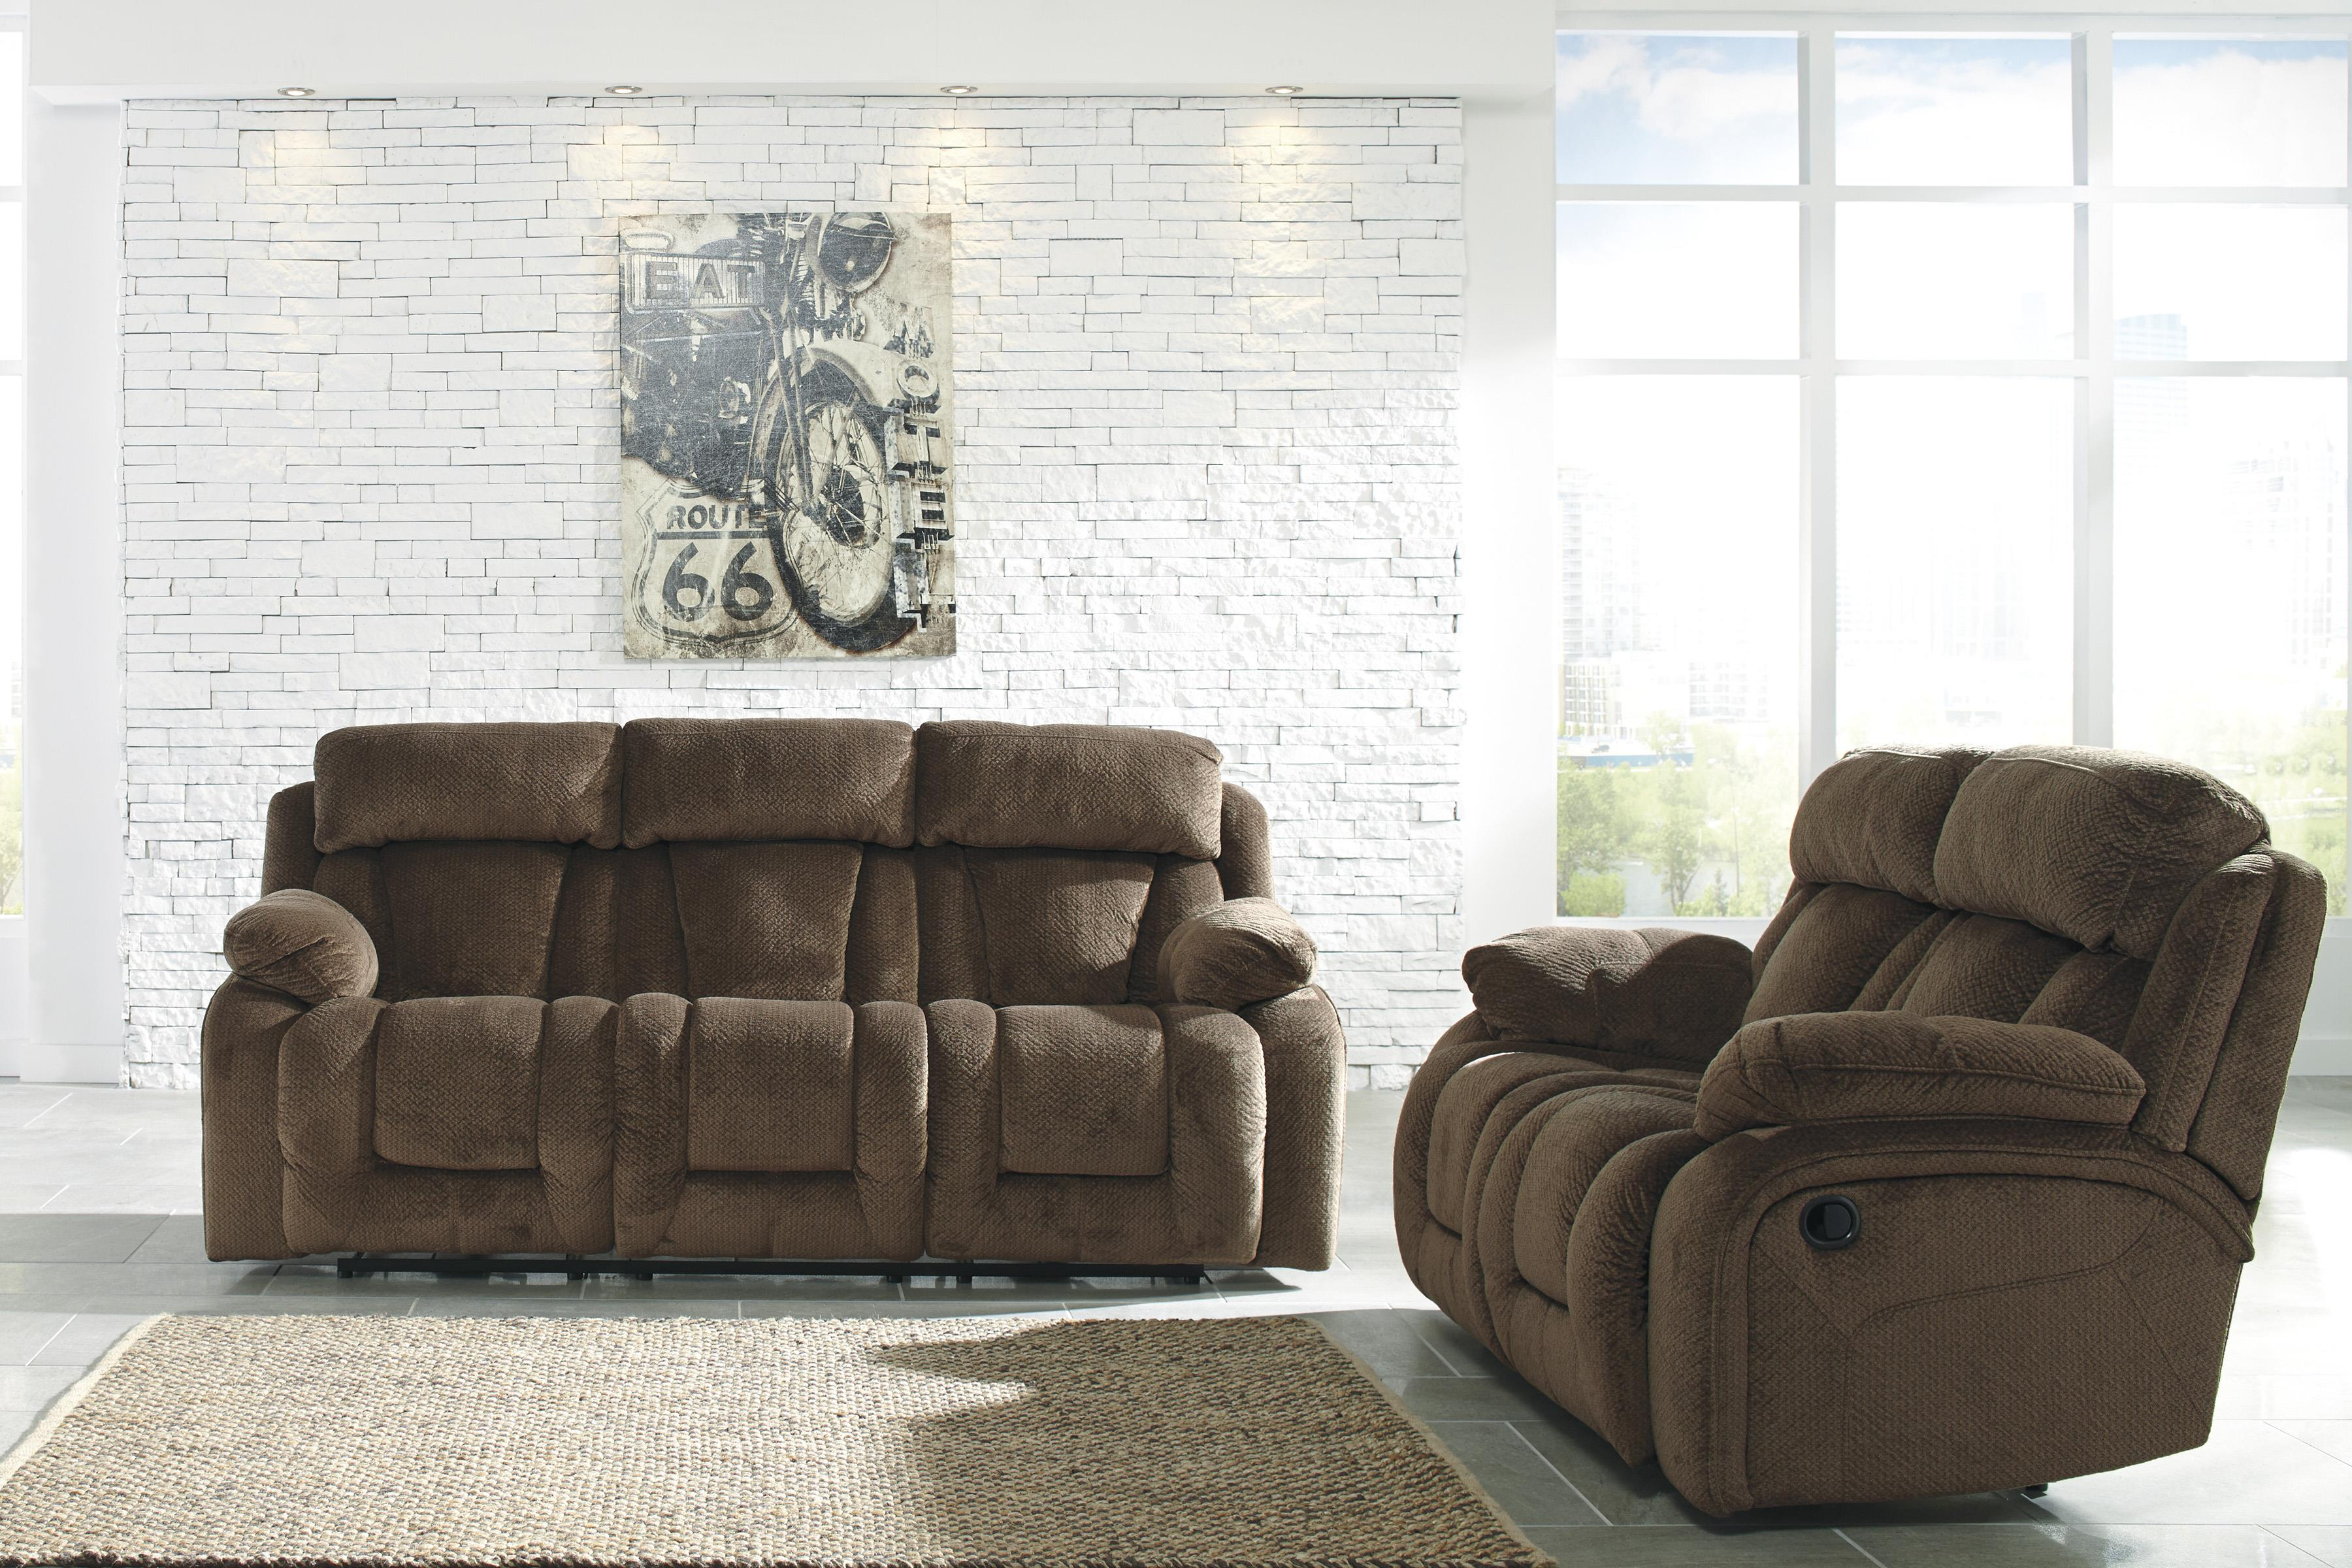 Signature Design by Ashley Stricklin Reclining Living Room Group - Item Number: 86503 Living Room Group 1